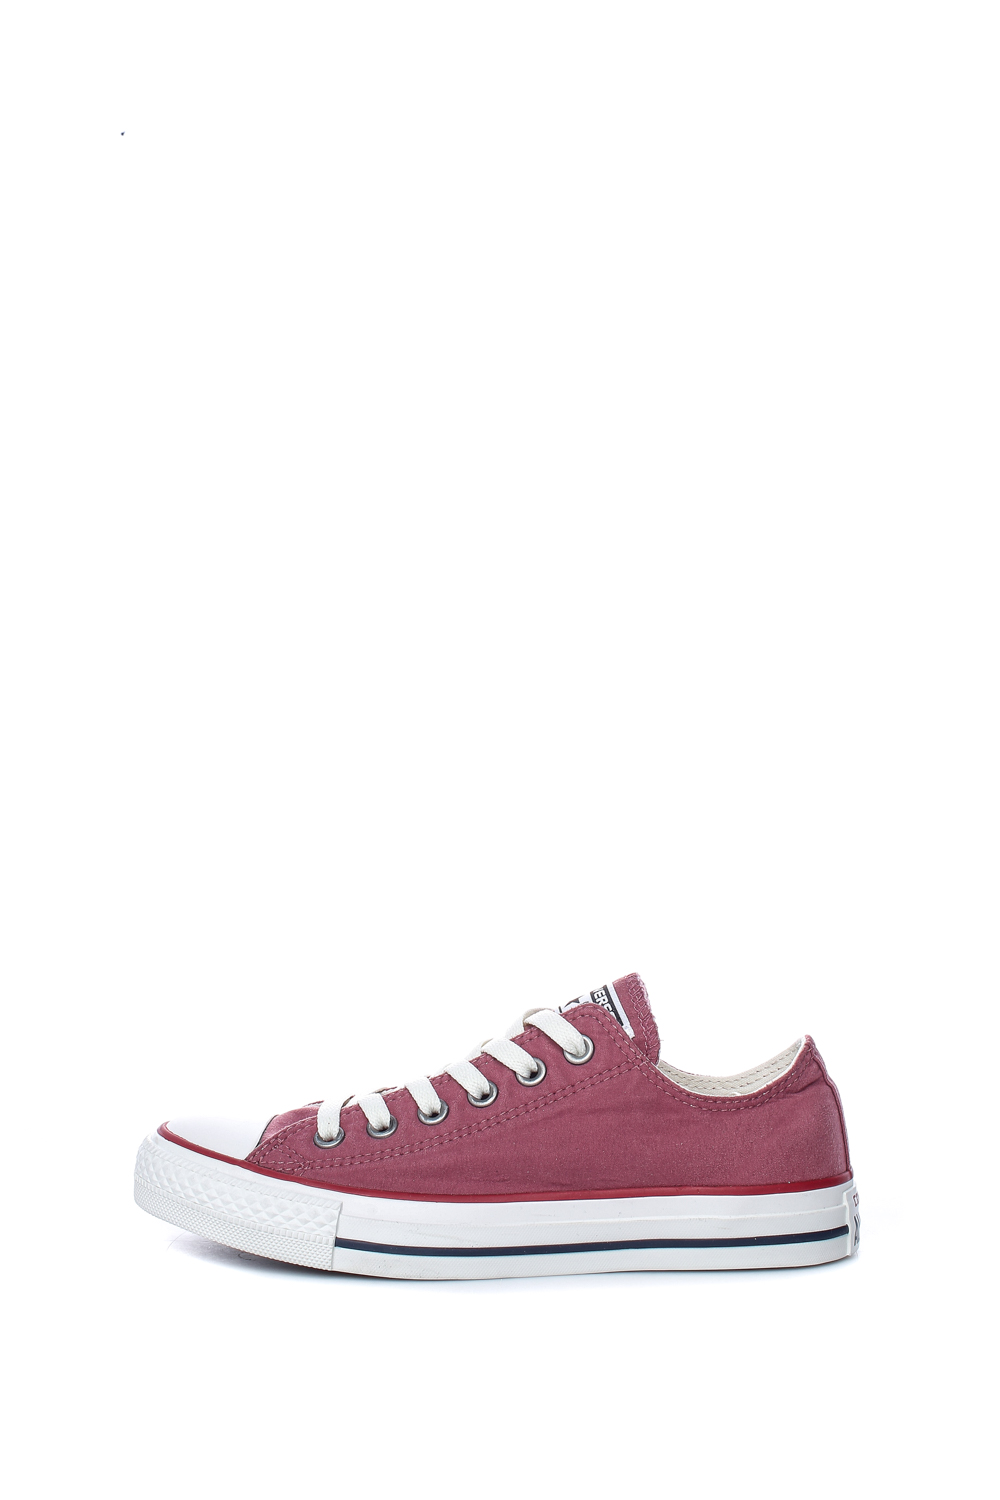 CONVERSE – Unisex sneakers CONVERSE Chuck Taylor All Star Ox κόκκινα